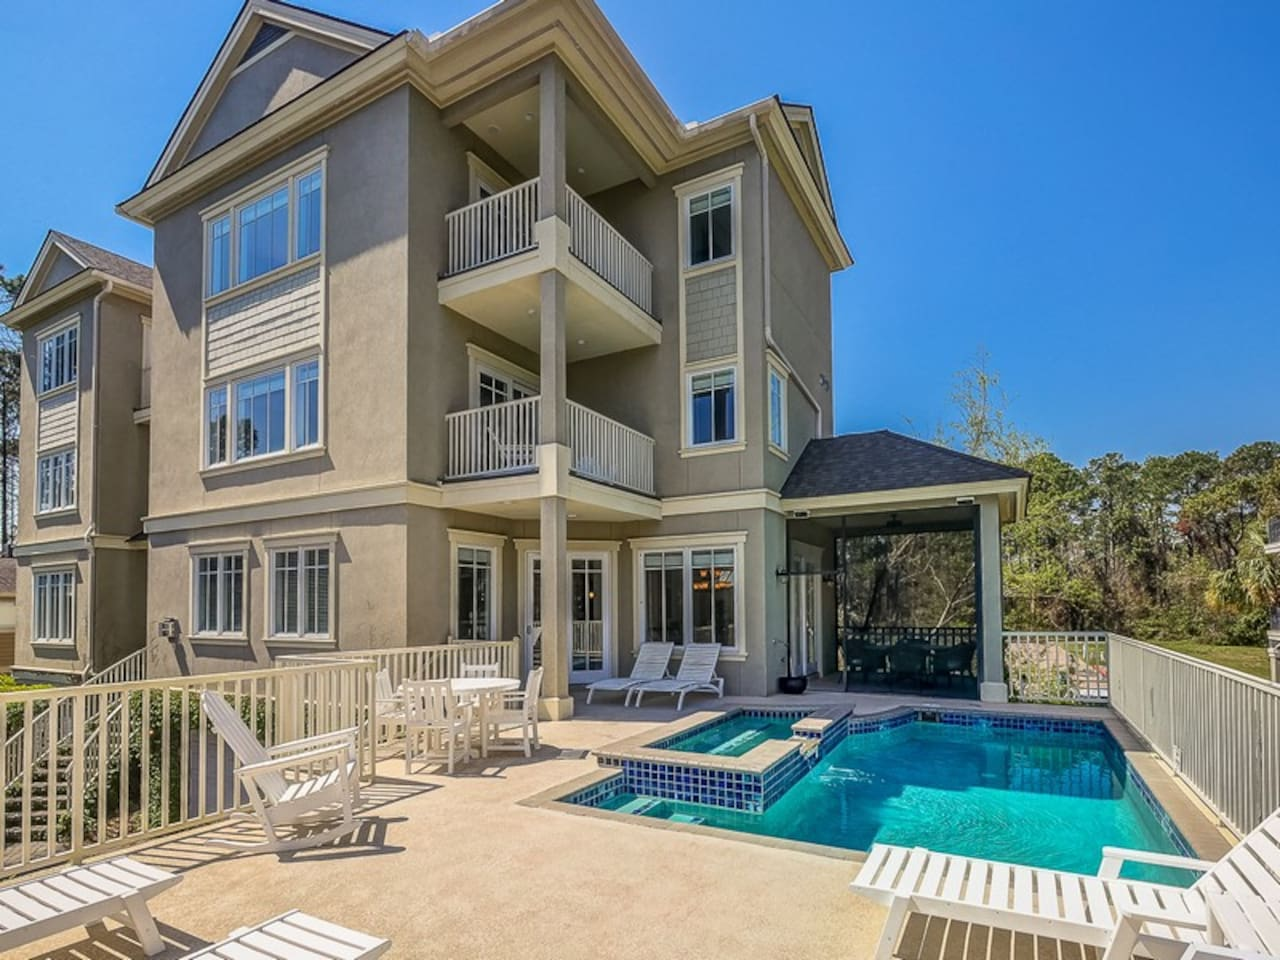 Spacious and Sunny Pool Deck at 5 Urchin Manor